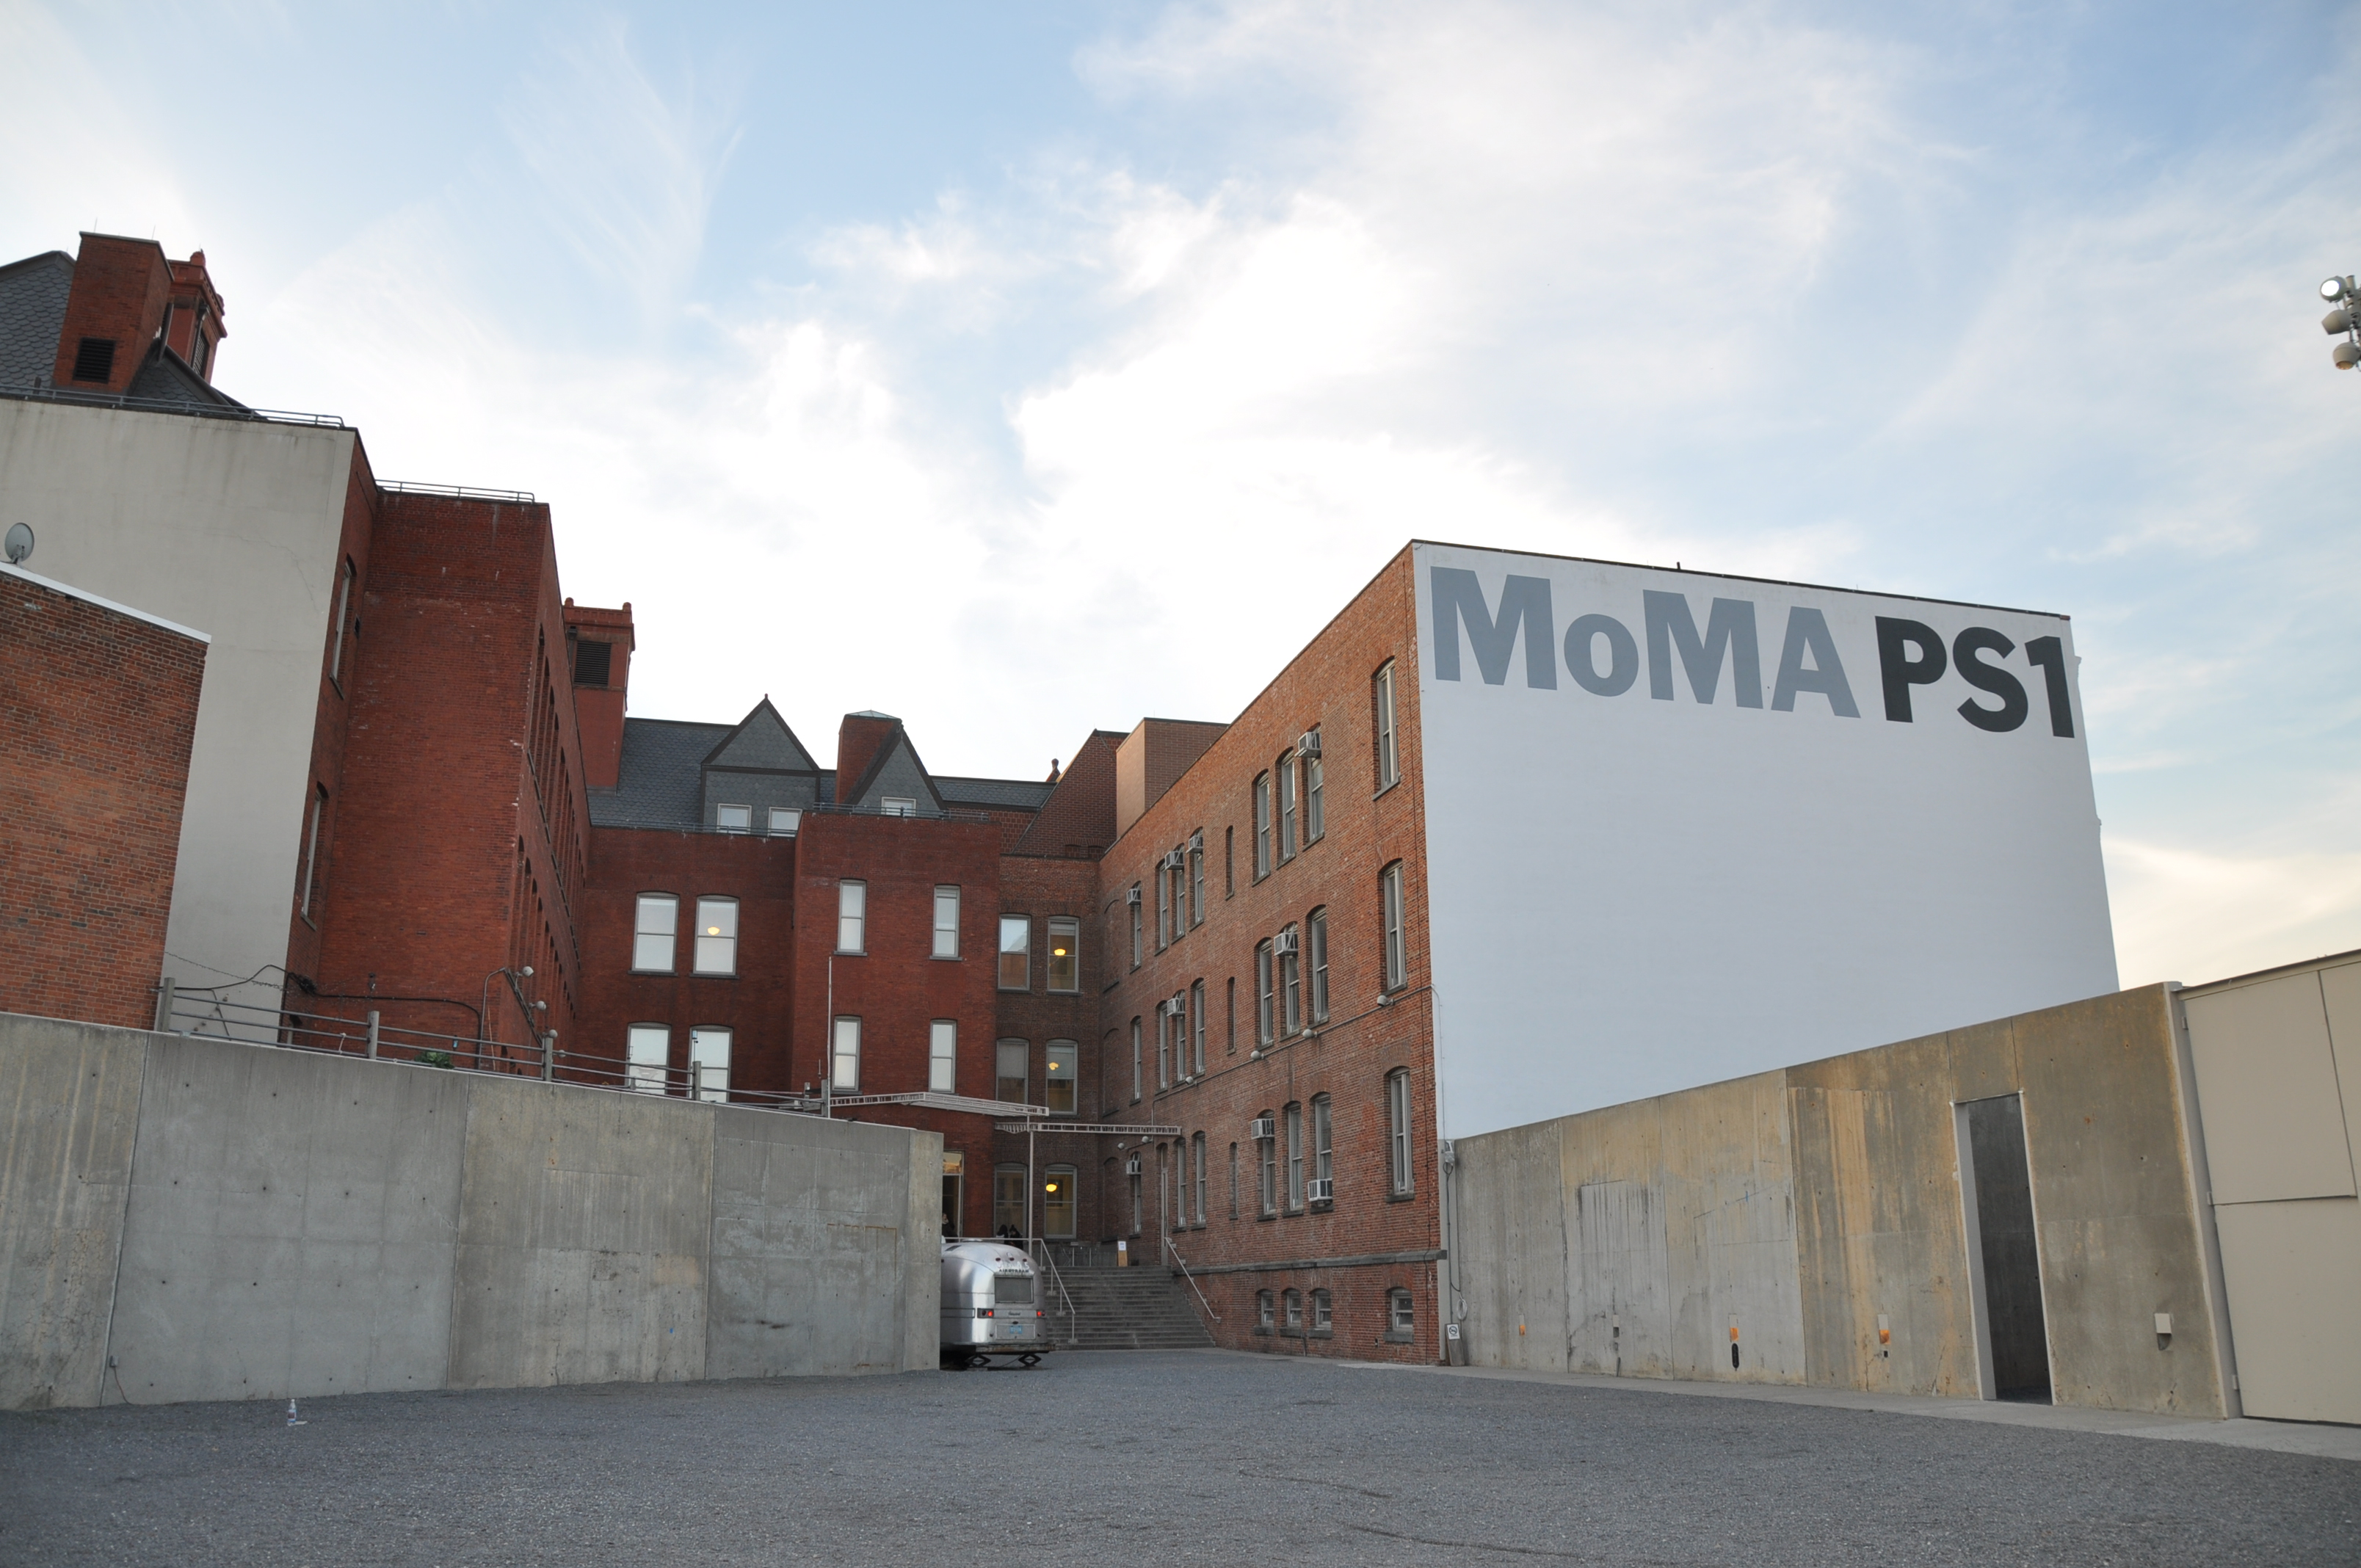 moma ps1 catherine sarah young. Black Bedroom Furniture Sets. Home Design Ideas